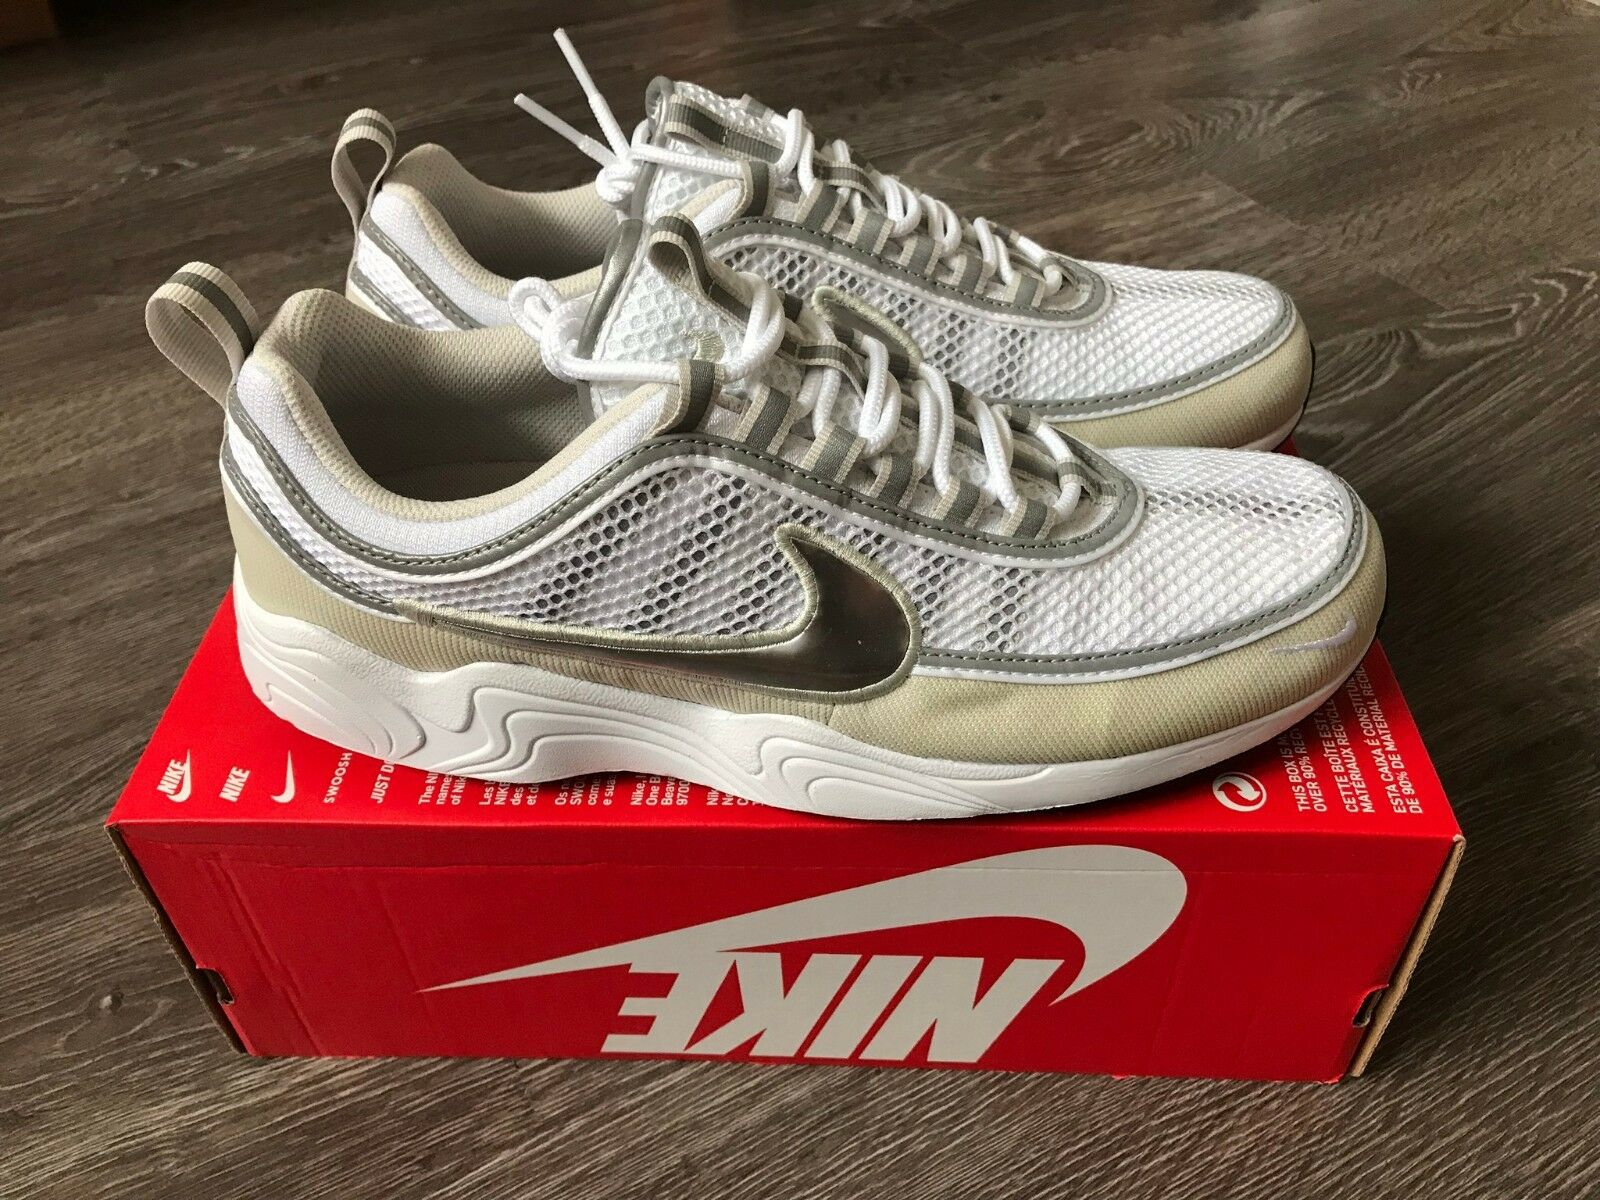 Nike Air Zoom Spiridon '16 White Metallic Silver Bone Bone Bone Grey 926955-105 Men's 12 0ed705